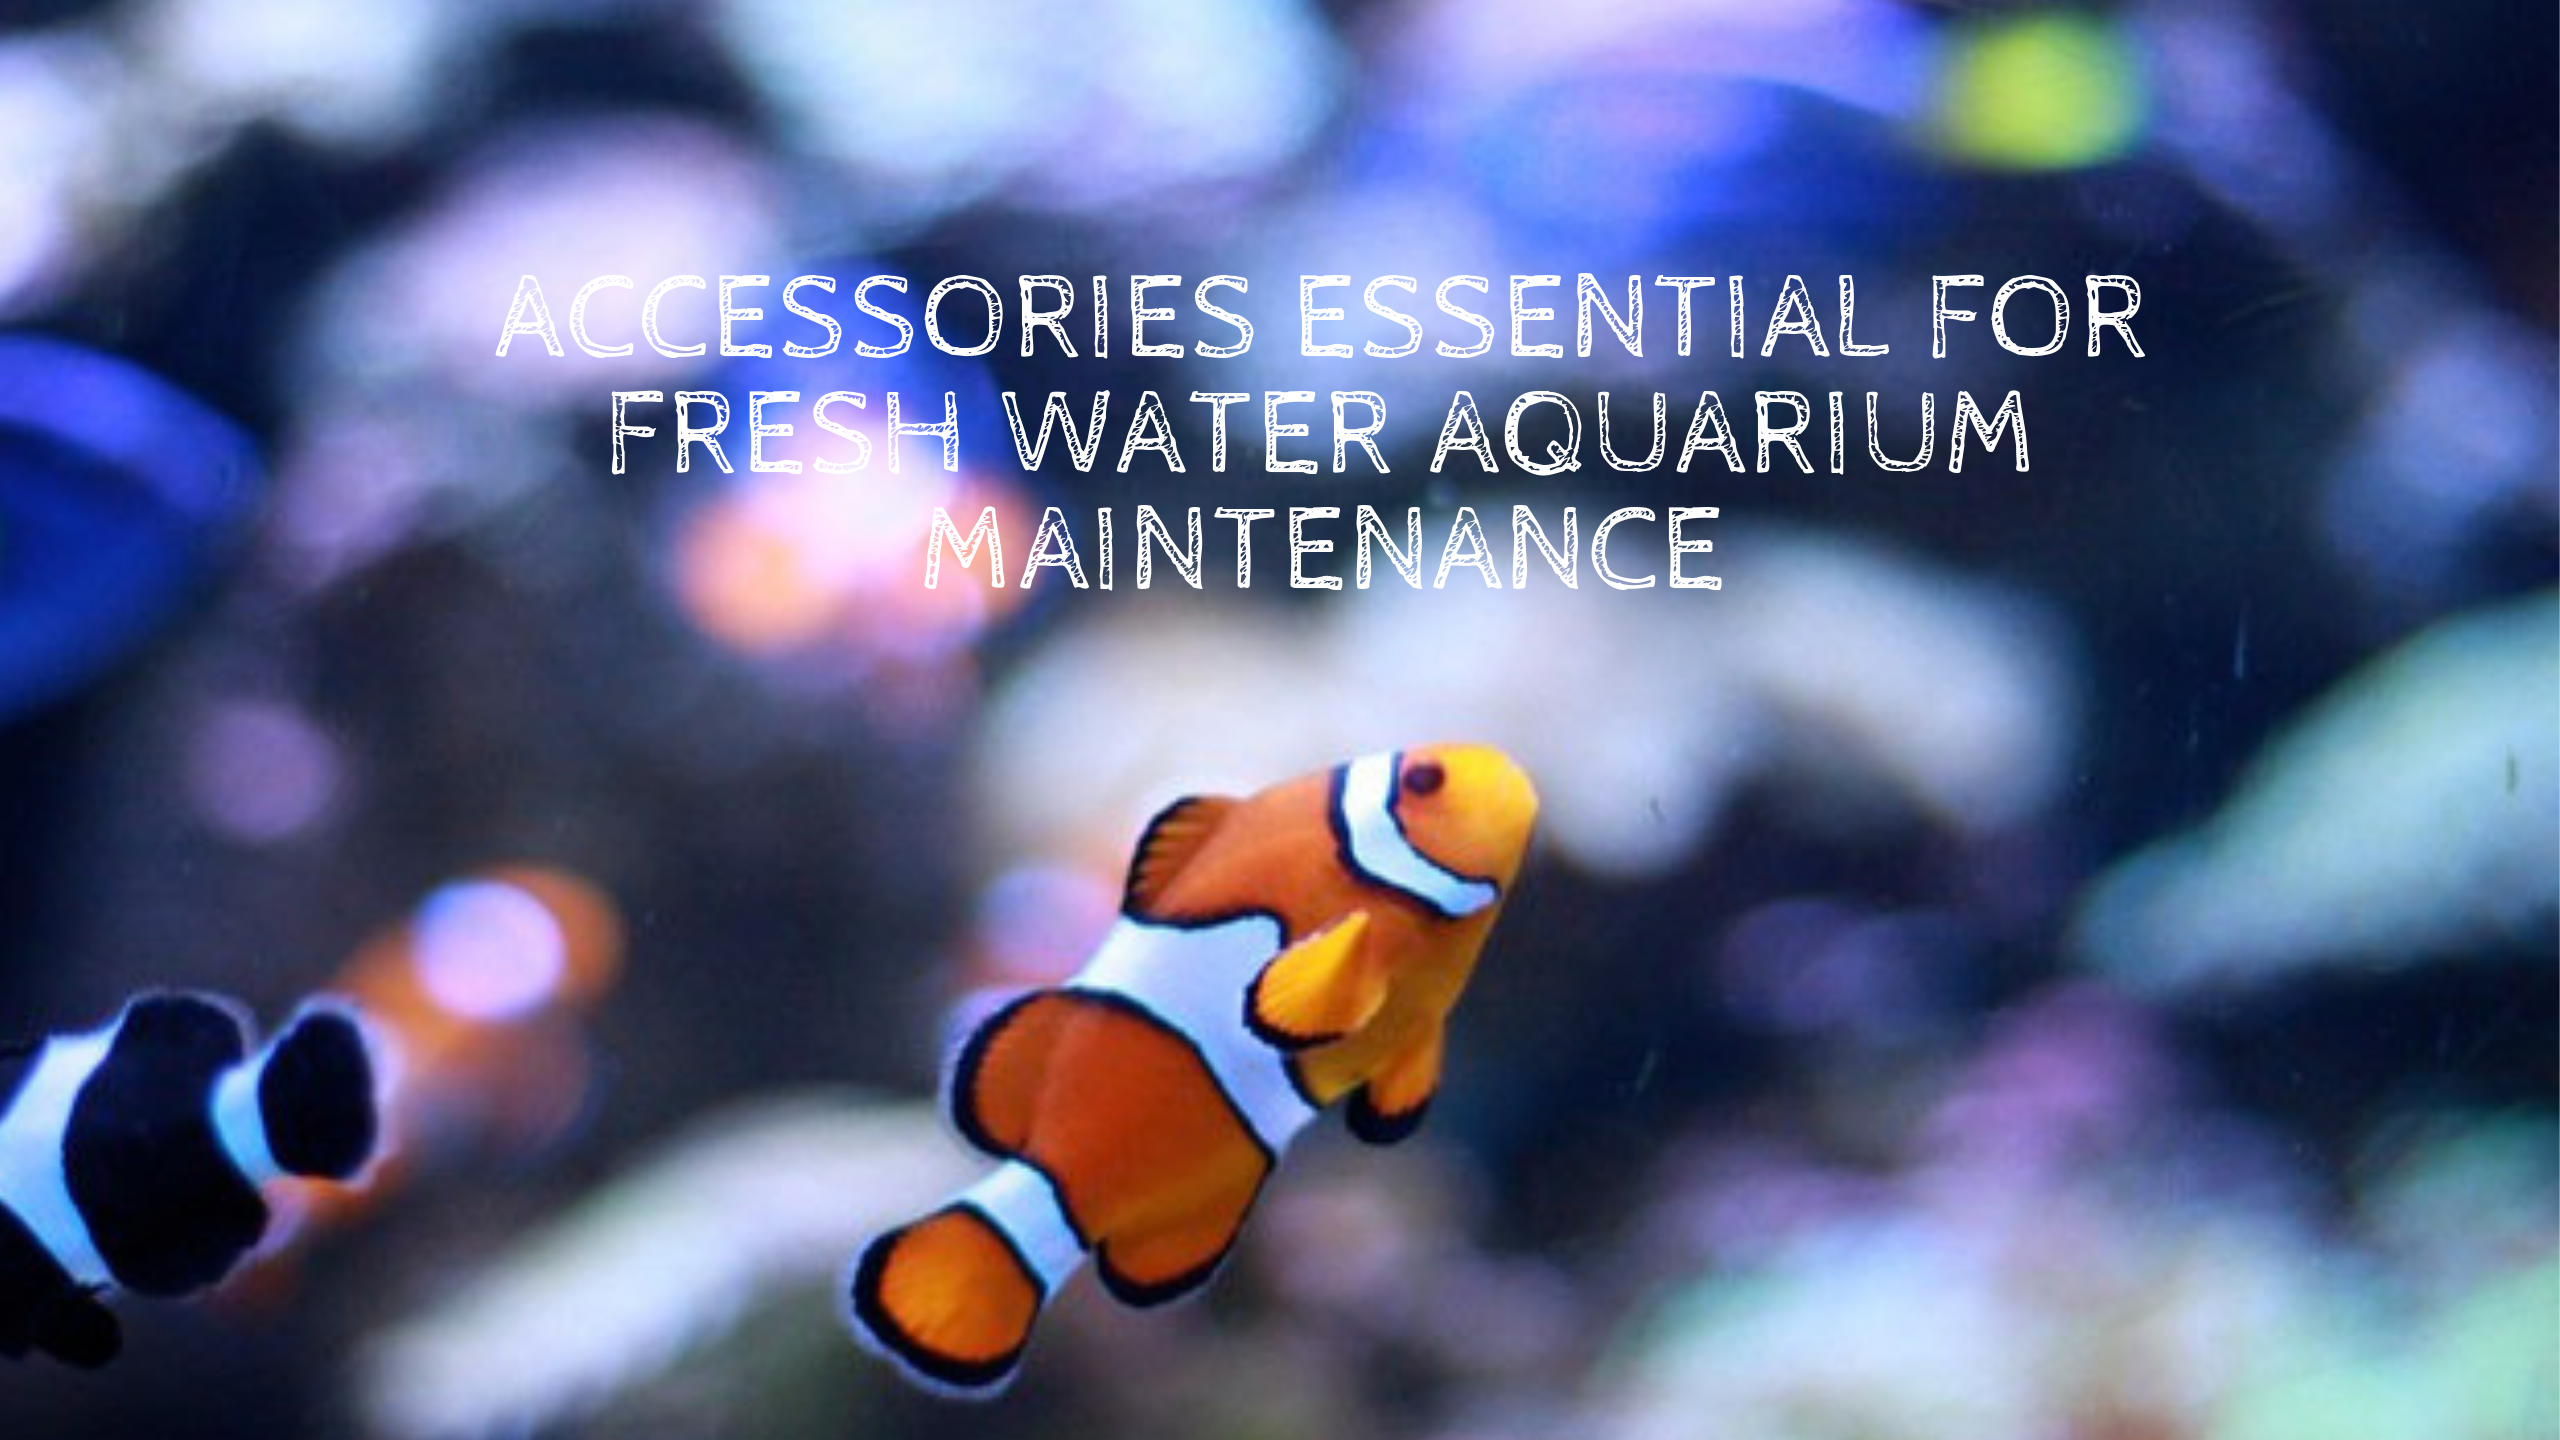 Accessories Essential For Fresh-Water Aquarium Maintenance